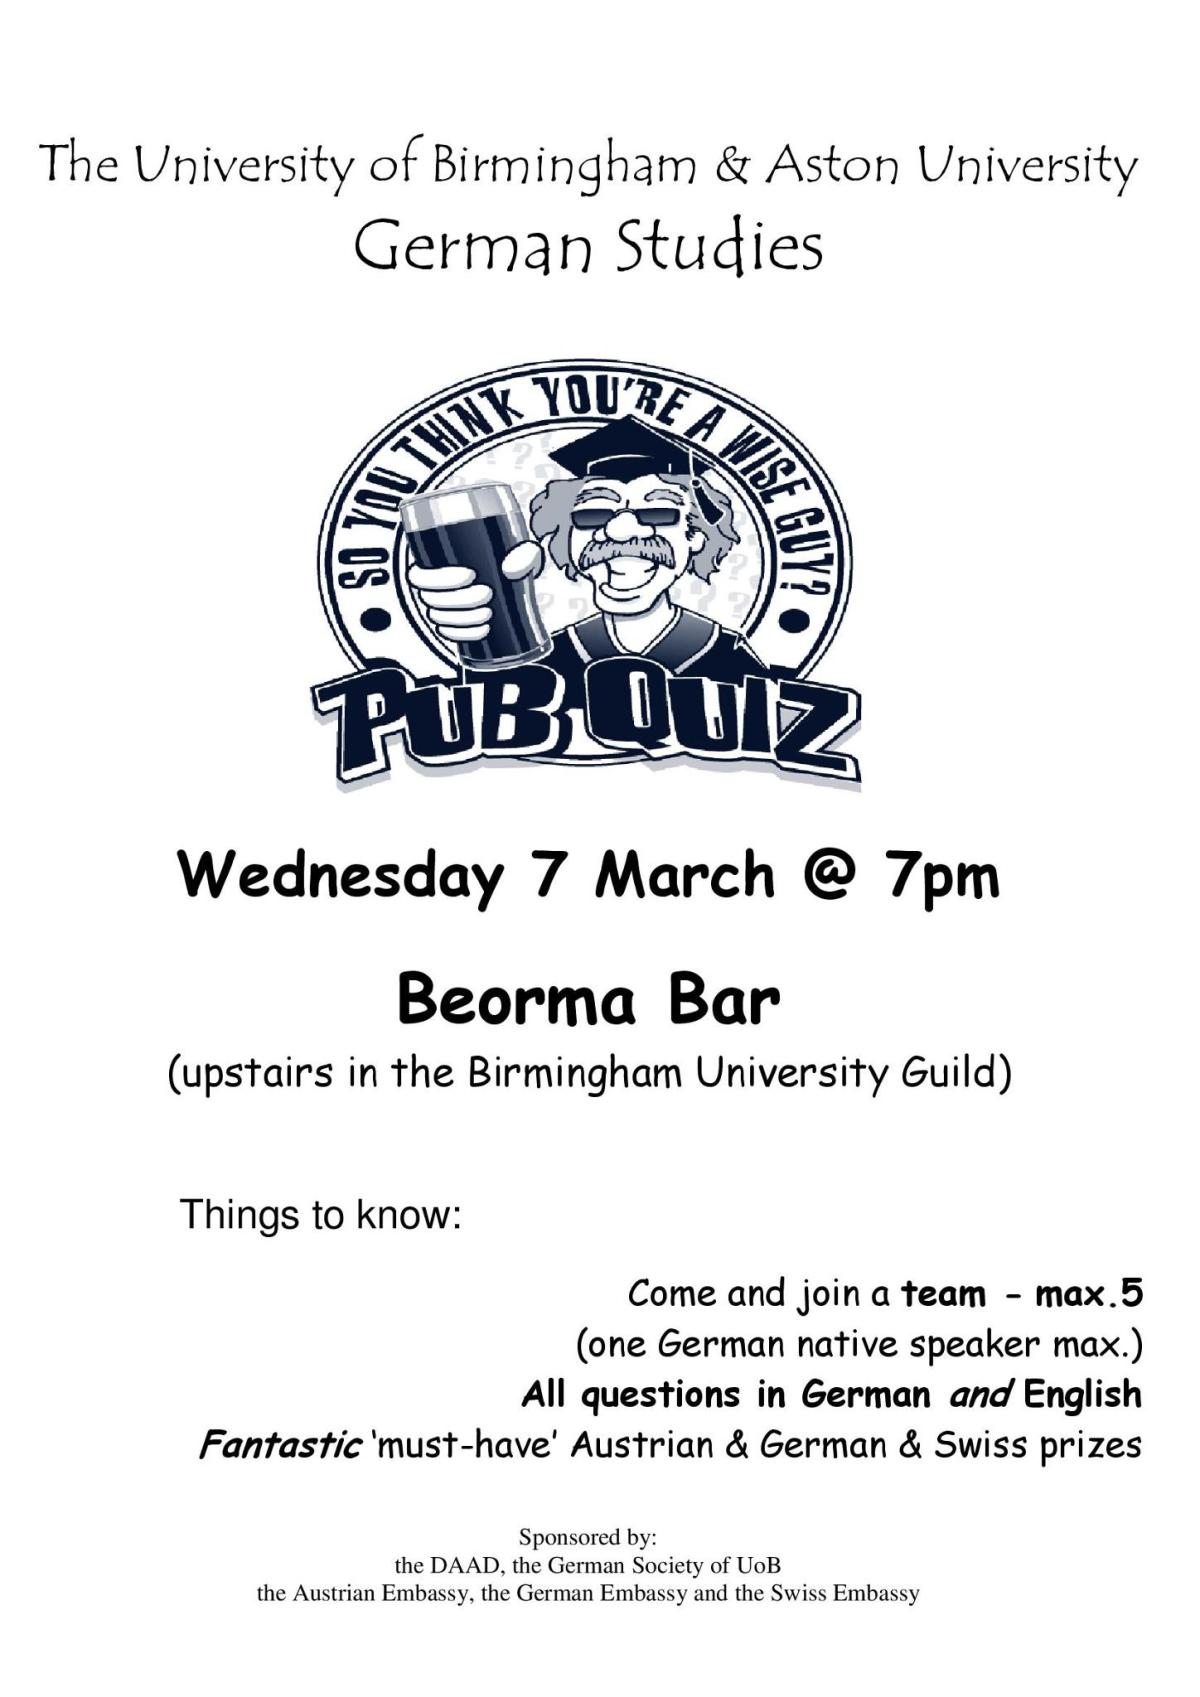 Big Upcoming Event: German Pub Quiz